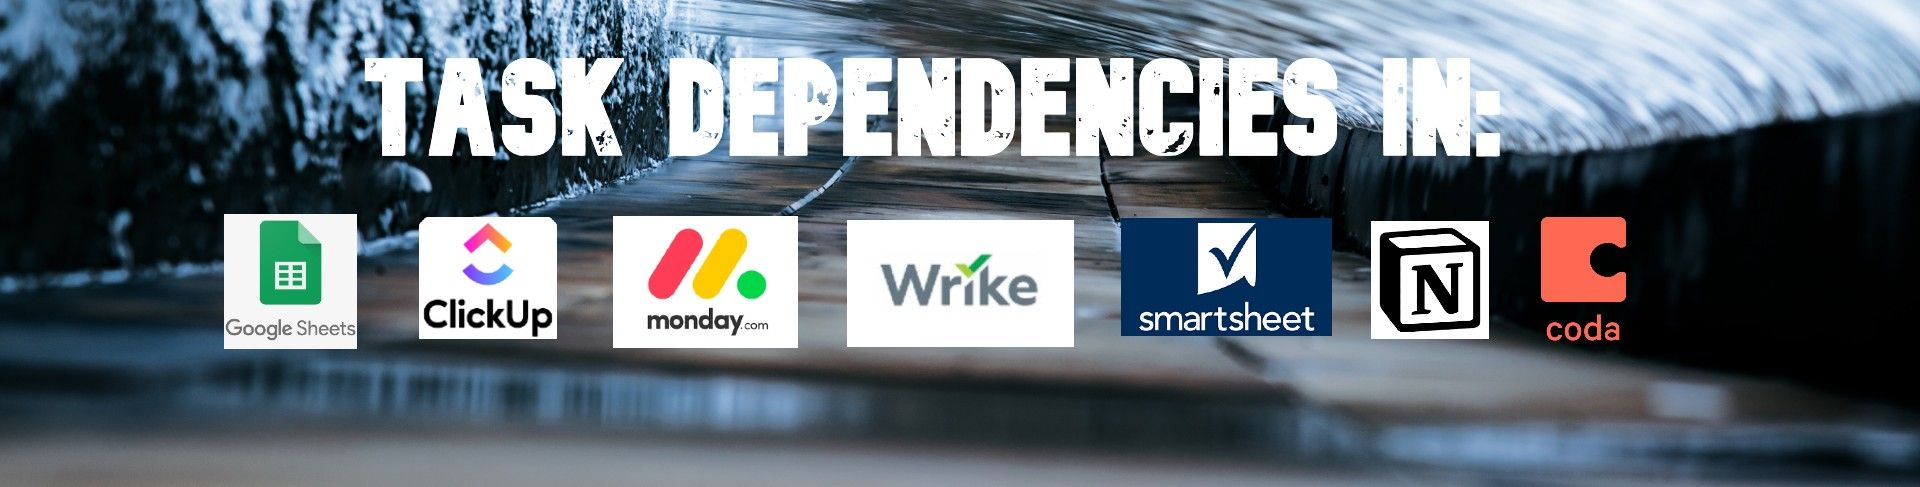 /building-dependencies-in-sheets-clickup-monday-wrike-smartsheets-l41s3tes feature image